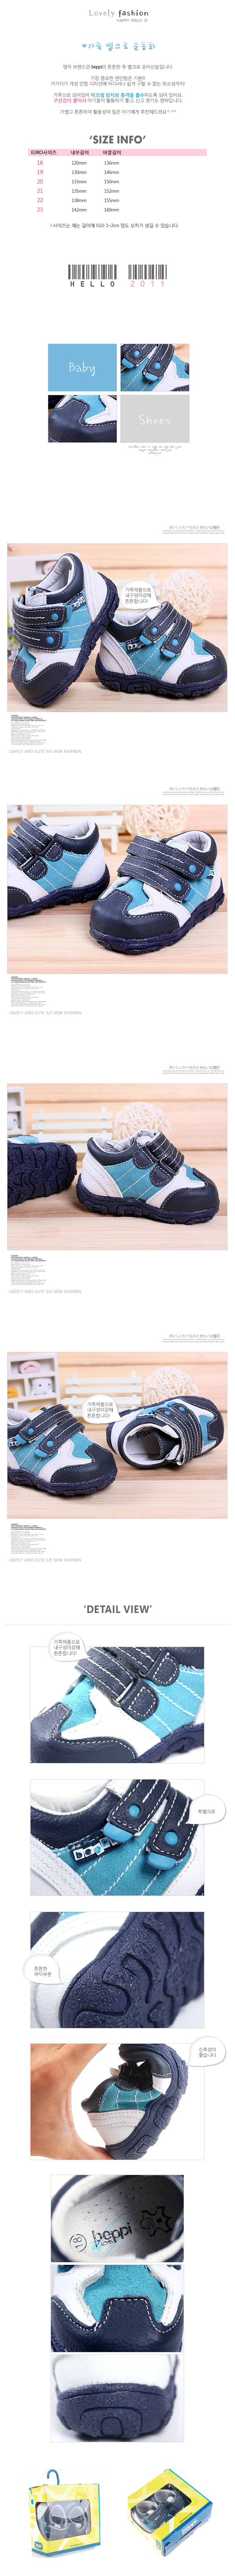 [ joymulti ] 201120 beppi cuir childshoes velcro (120-160mm)